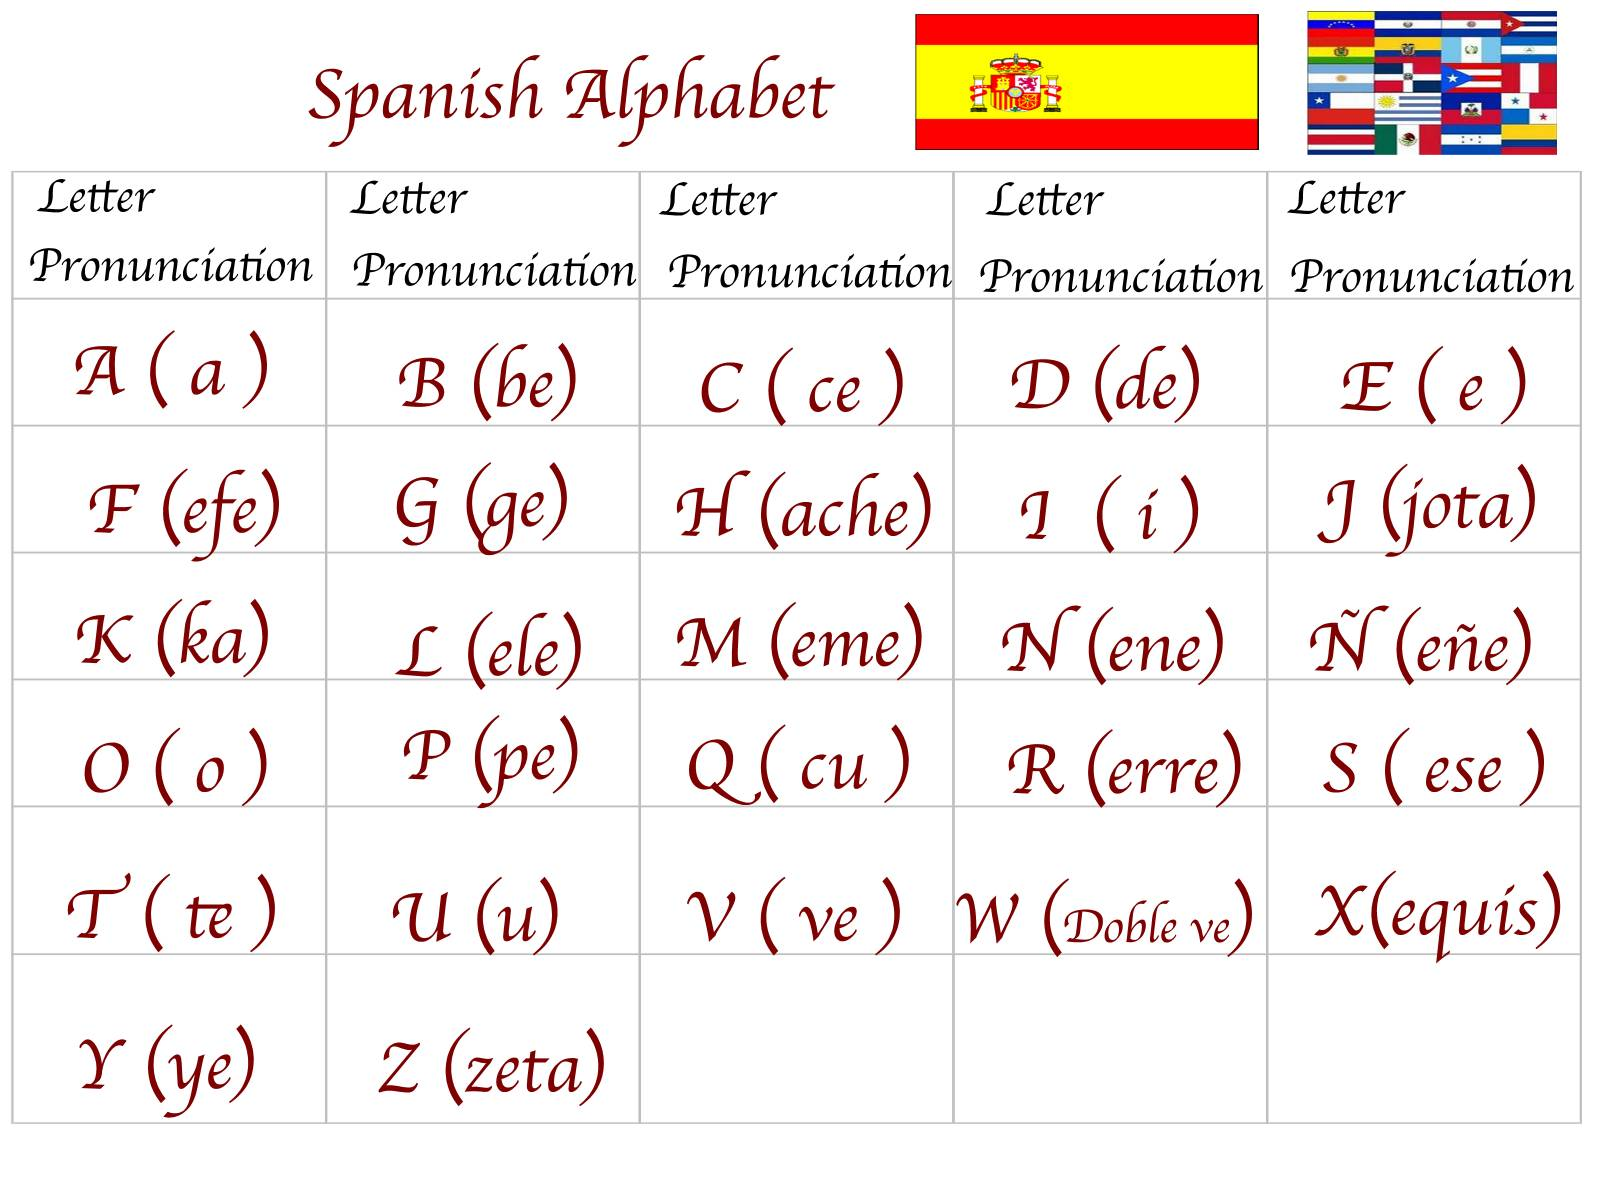 the spanish alphabet has the following 27 letters and 2 digraphs